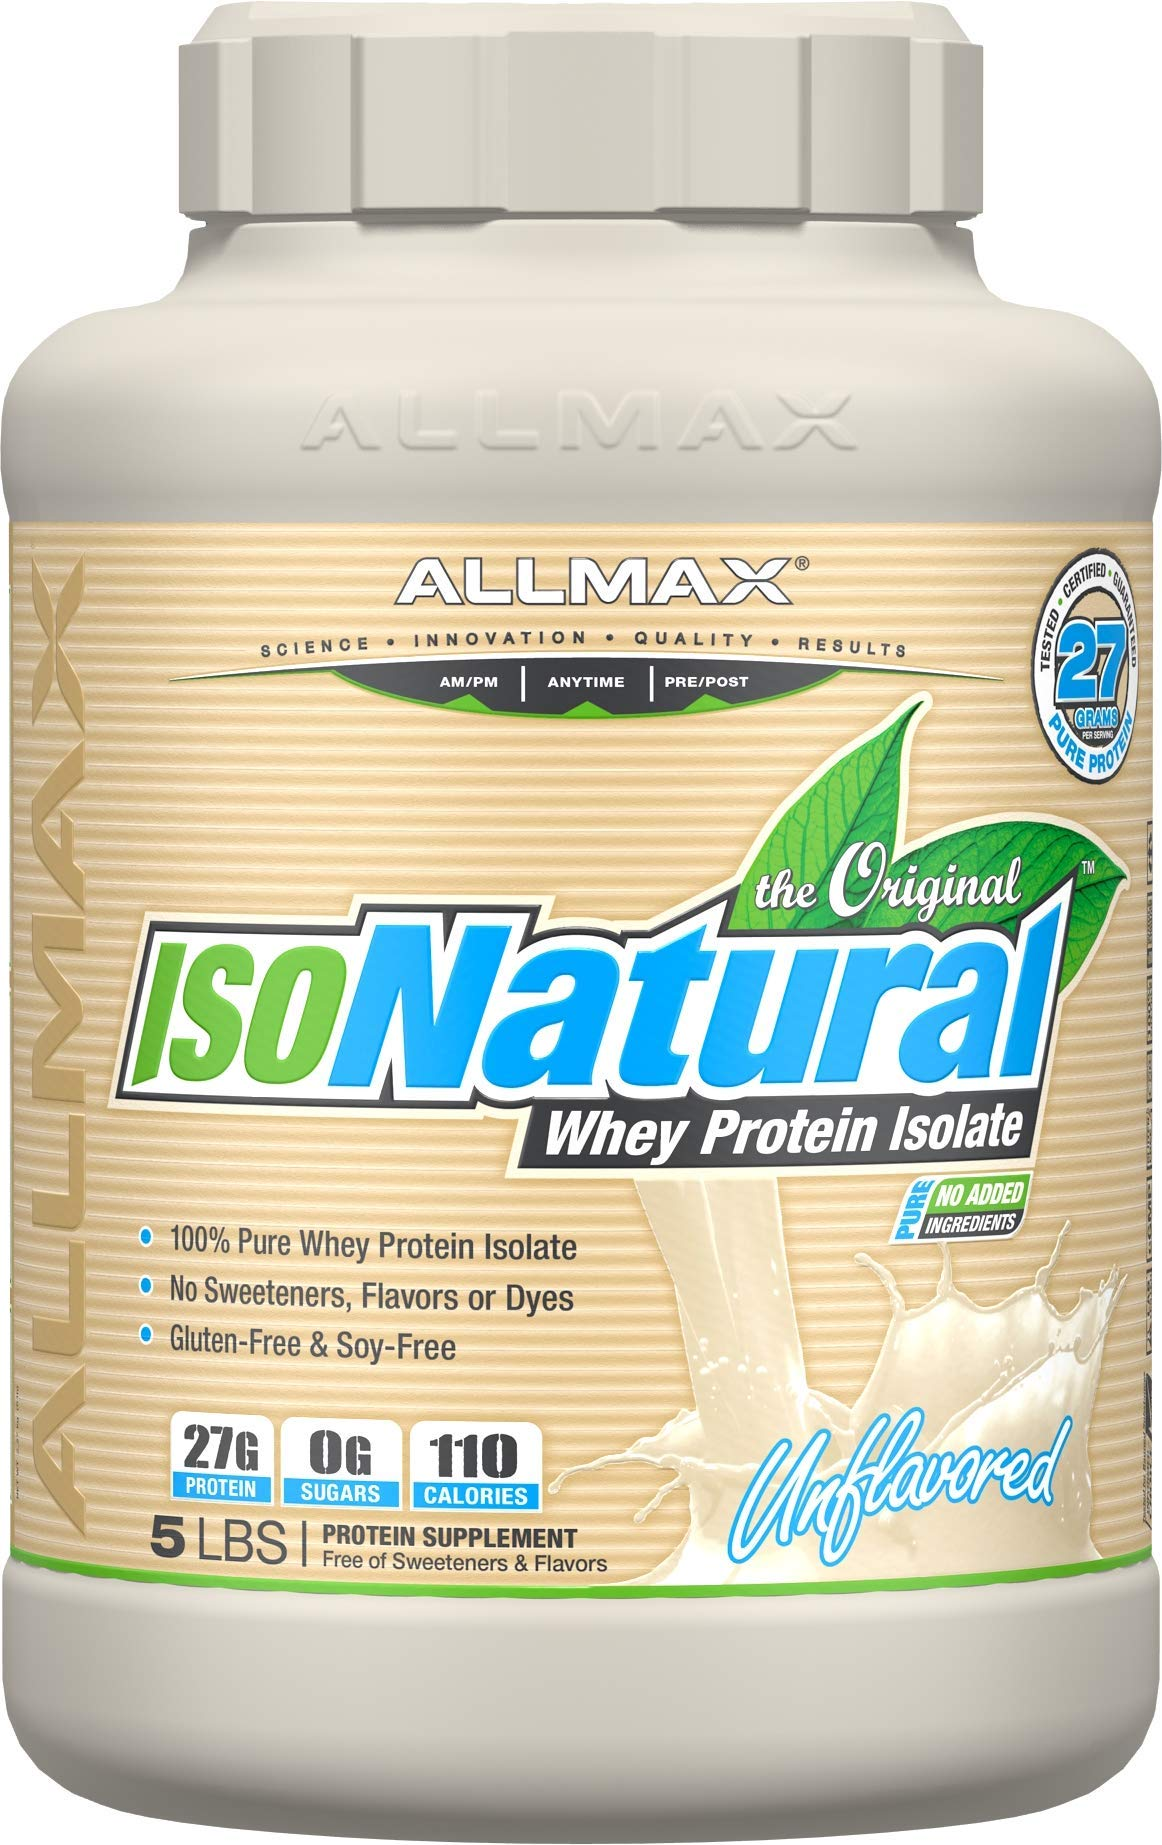 ALLMAX Nutrition Isonatural 100% Ultra-Pure Natural Whey Protein Isolate, Unflavored, 5 lbs by ALLMAX Nutrition